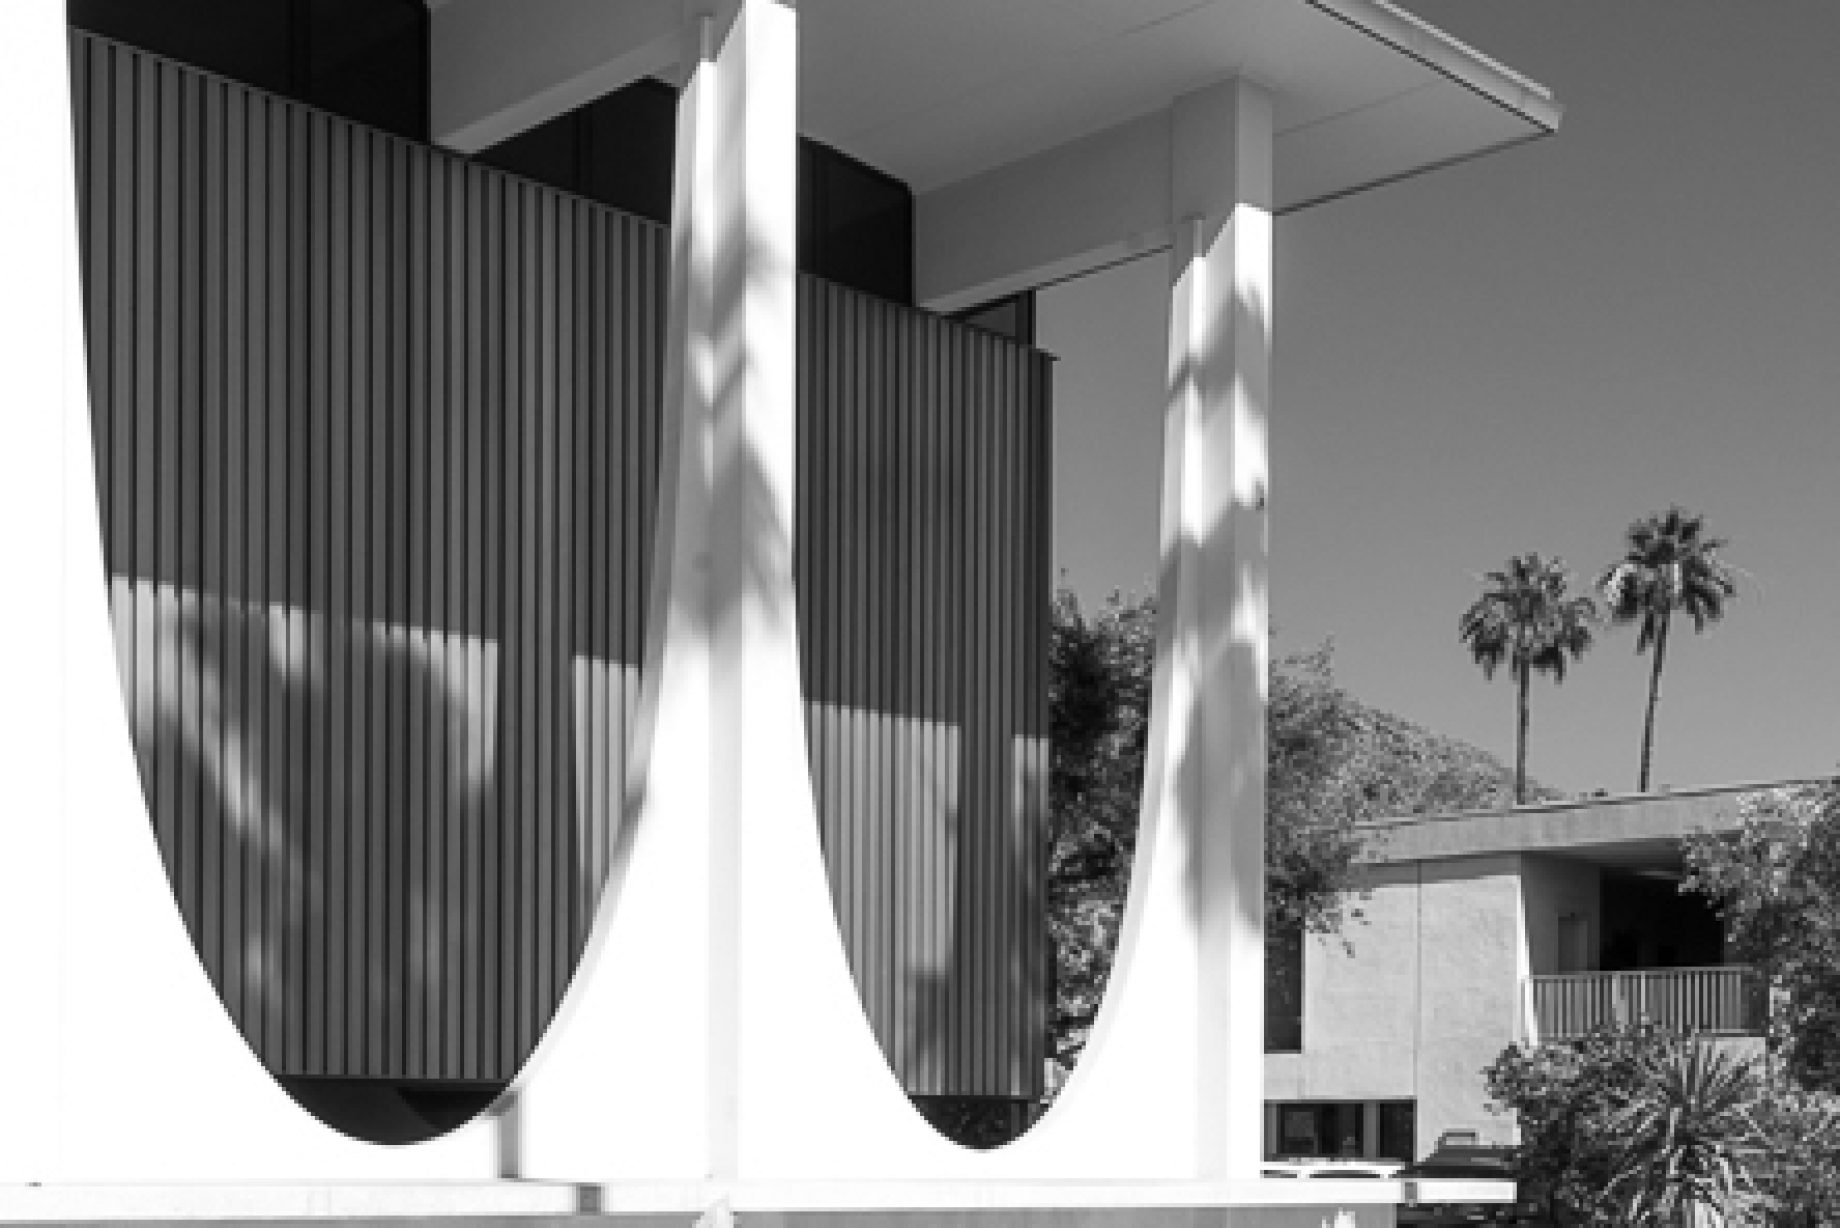 Washington Mutual bank building - downtown Palm Springs was designed by Harry Williams - architectural photography